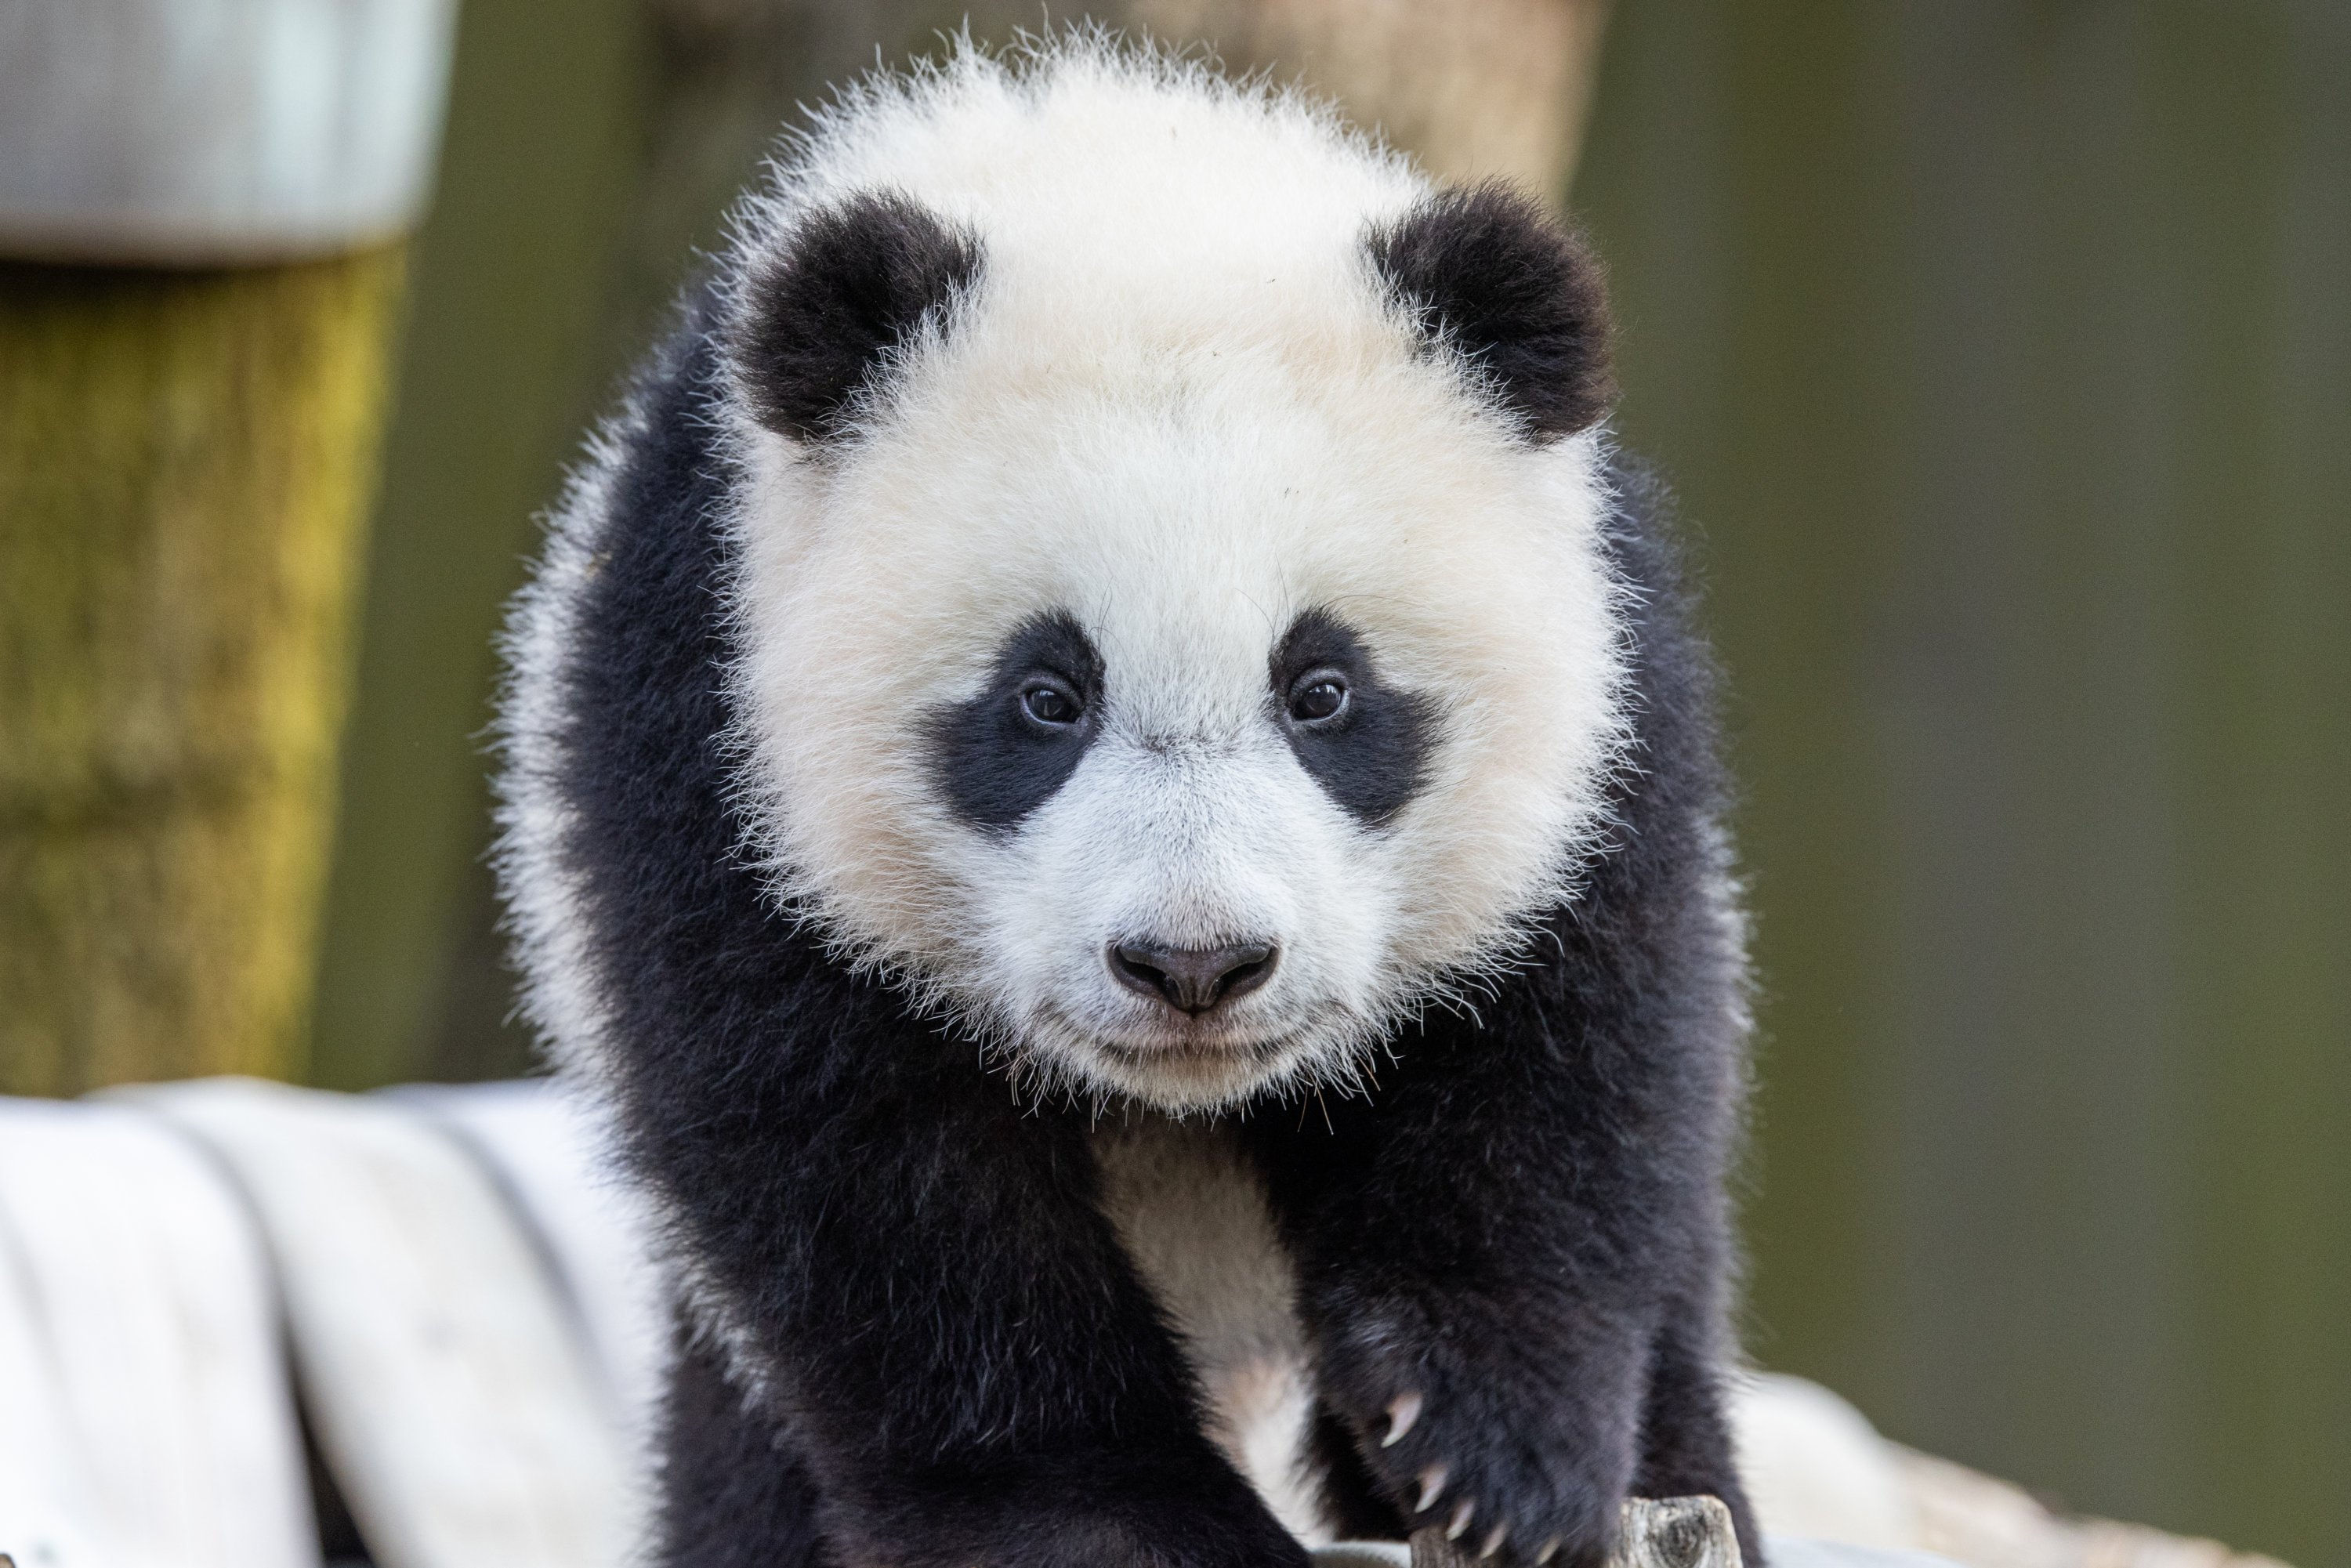 Just look at that face! Photo courtesy of Smithsonian's National Zoo.